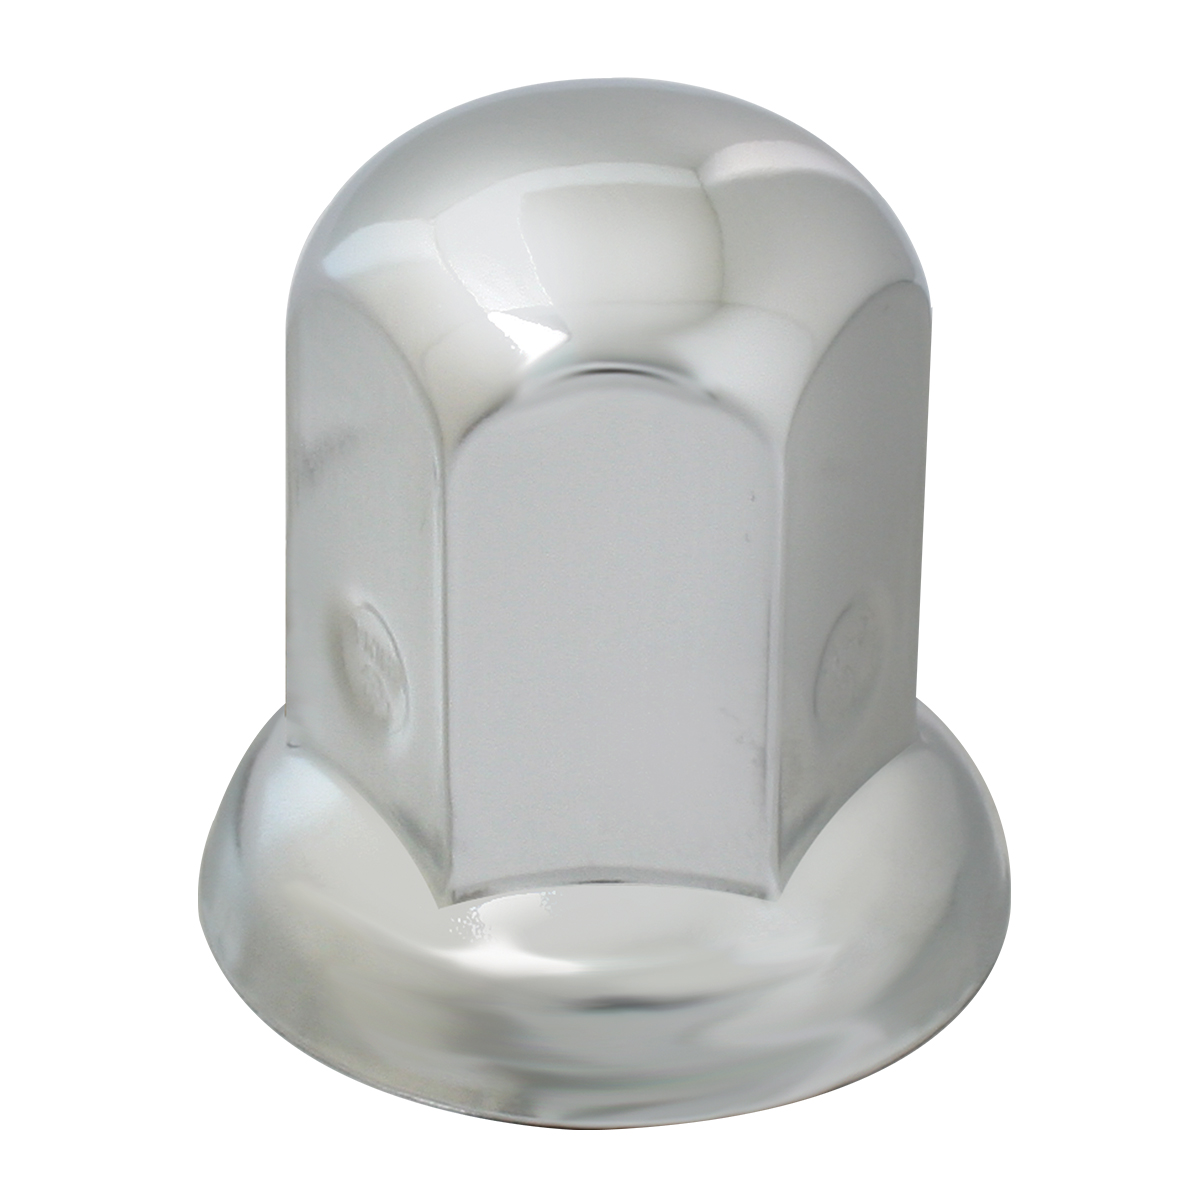 10411 Chrome Steel Standard Push-On Lug Nut Cover w/ Flange for GMC Top Kick Medium Duty Truck